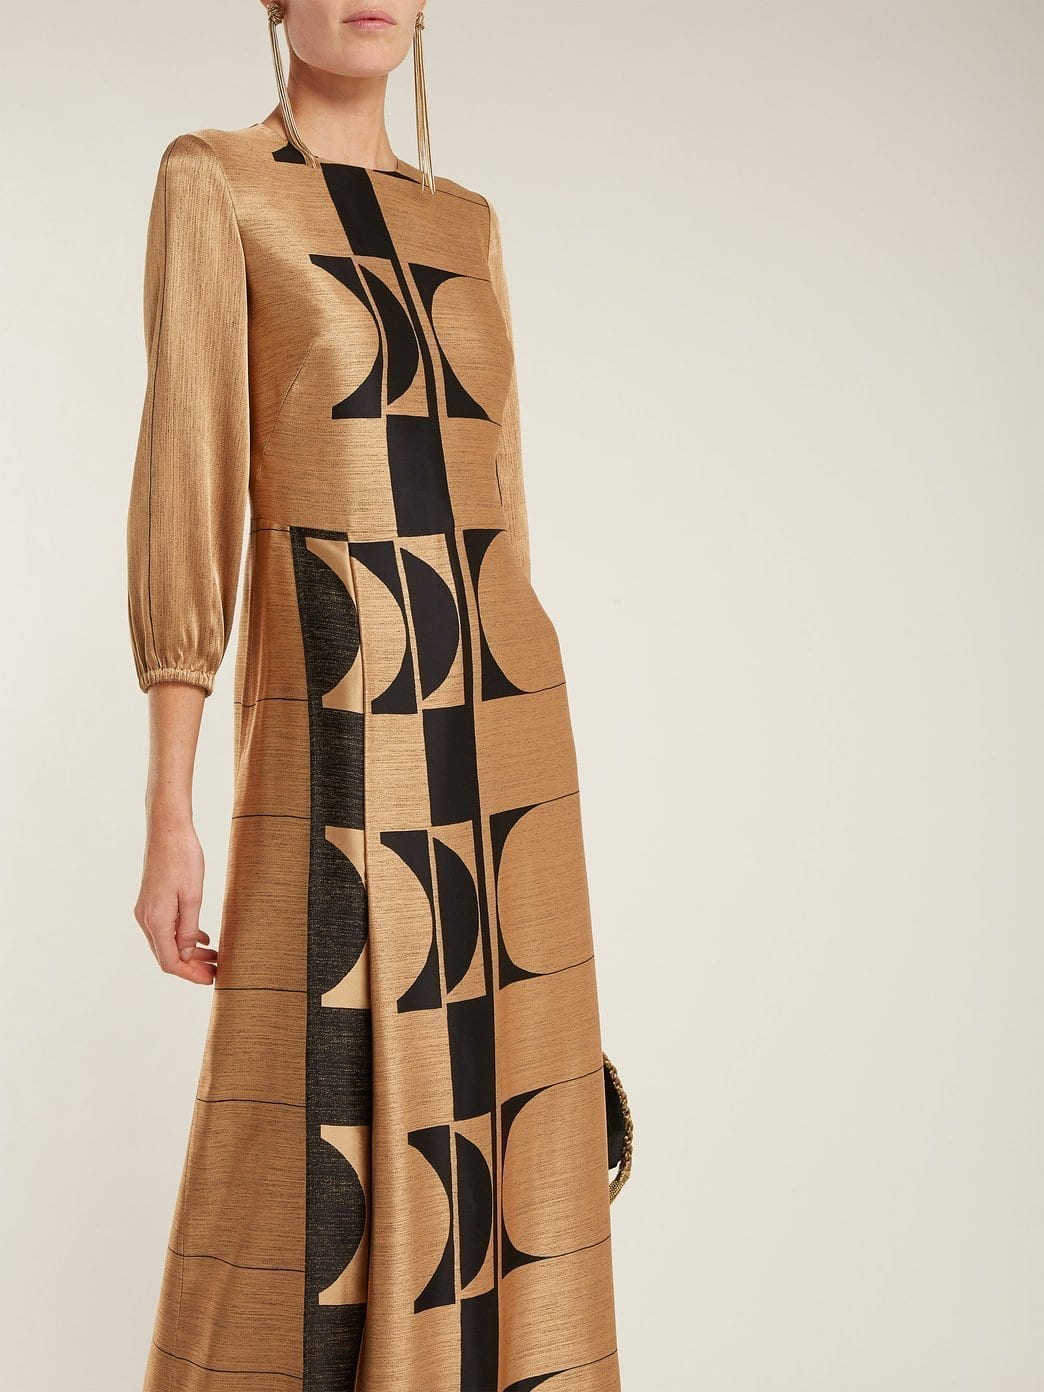 CARL KAPP Osiris Abstract Jacquard Gold Gown_2